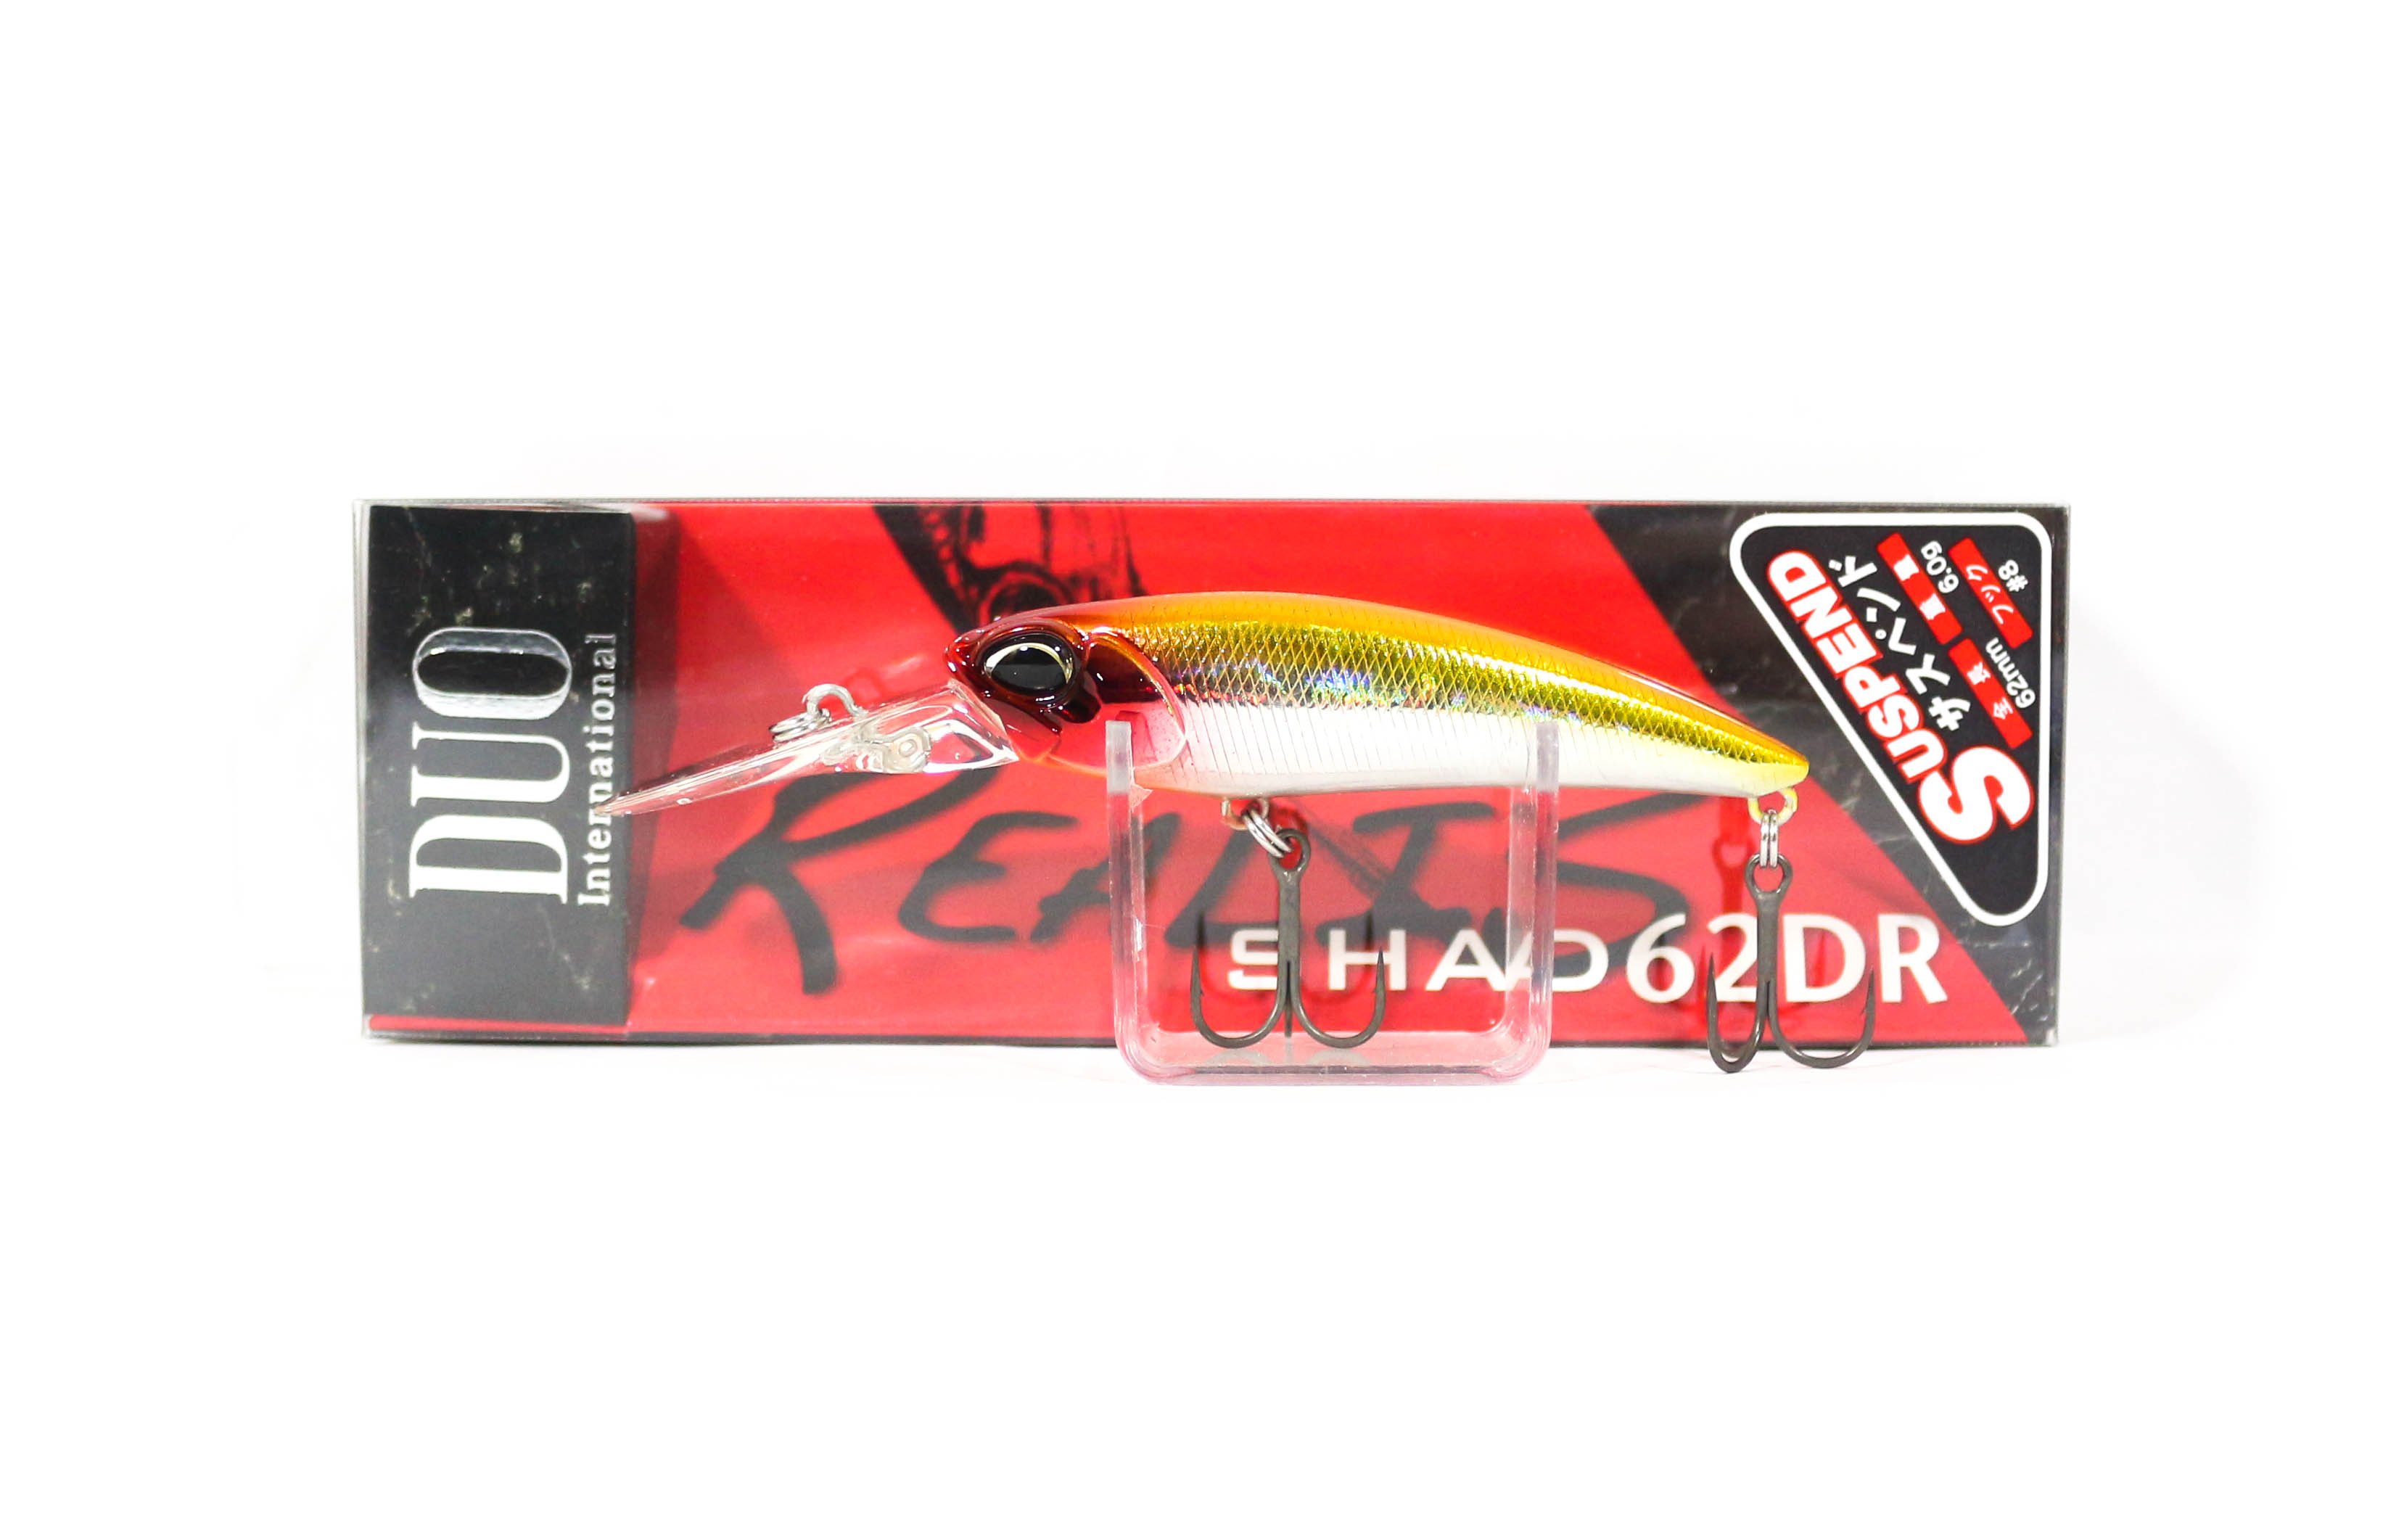 Duo Realis Shad 62 DR Suspend Lure ADA3033 (0145)